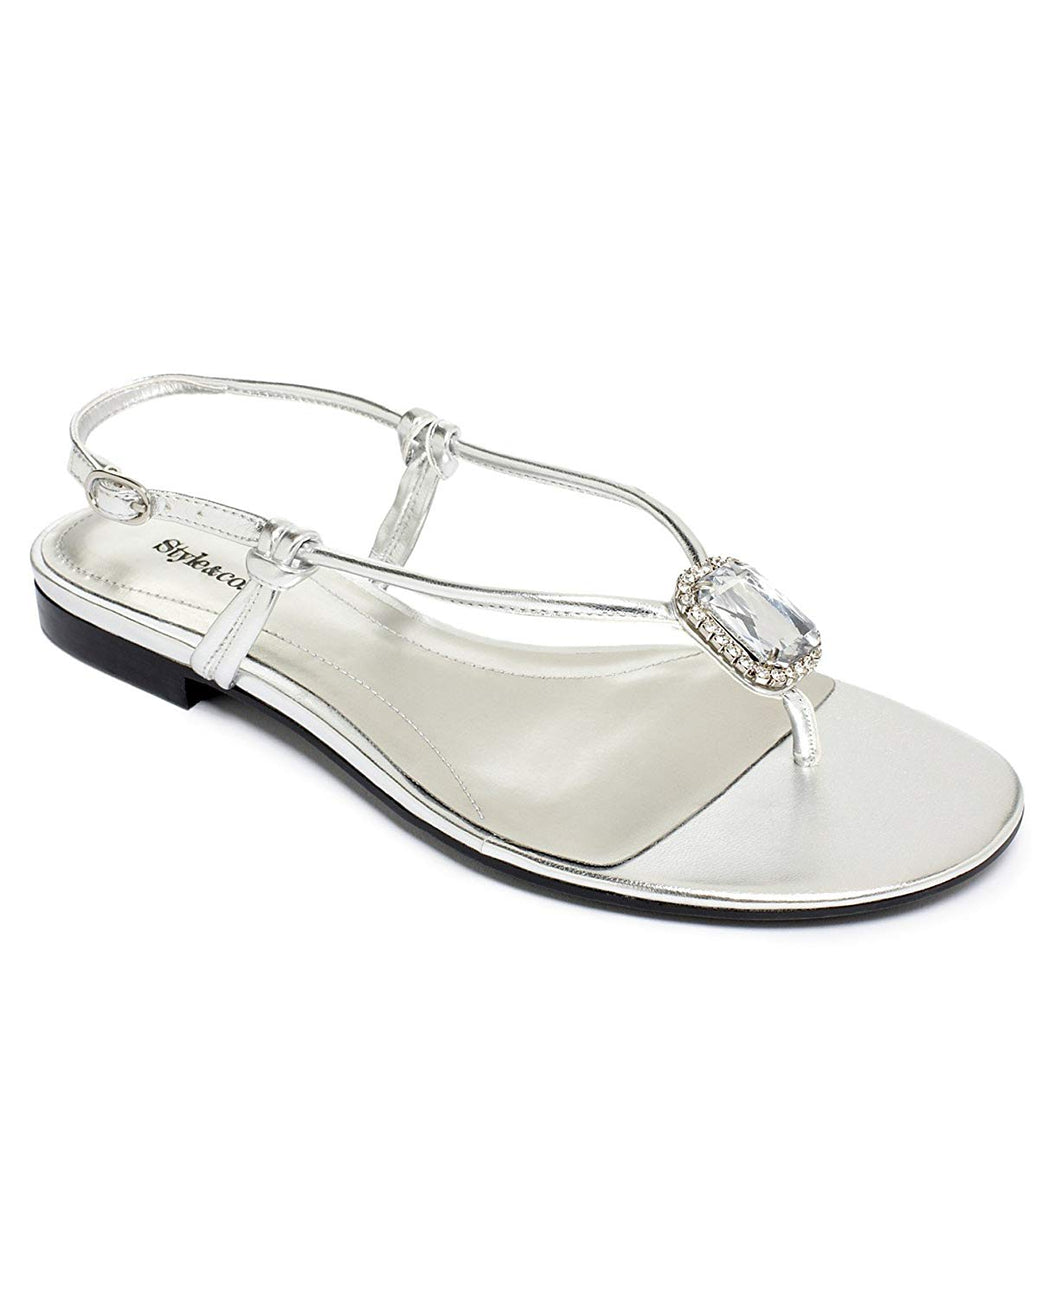 Style & Co. Size 6.5 M Womens Silver JUBILEE SILVER THONG STONE Sandals